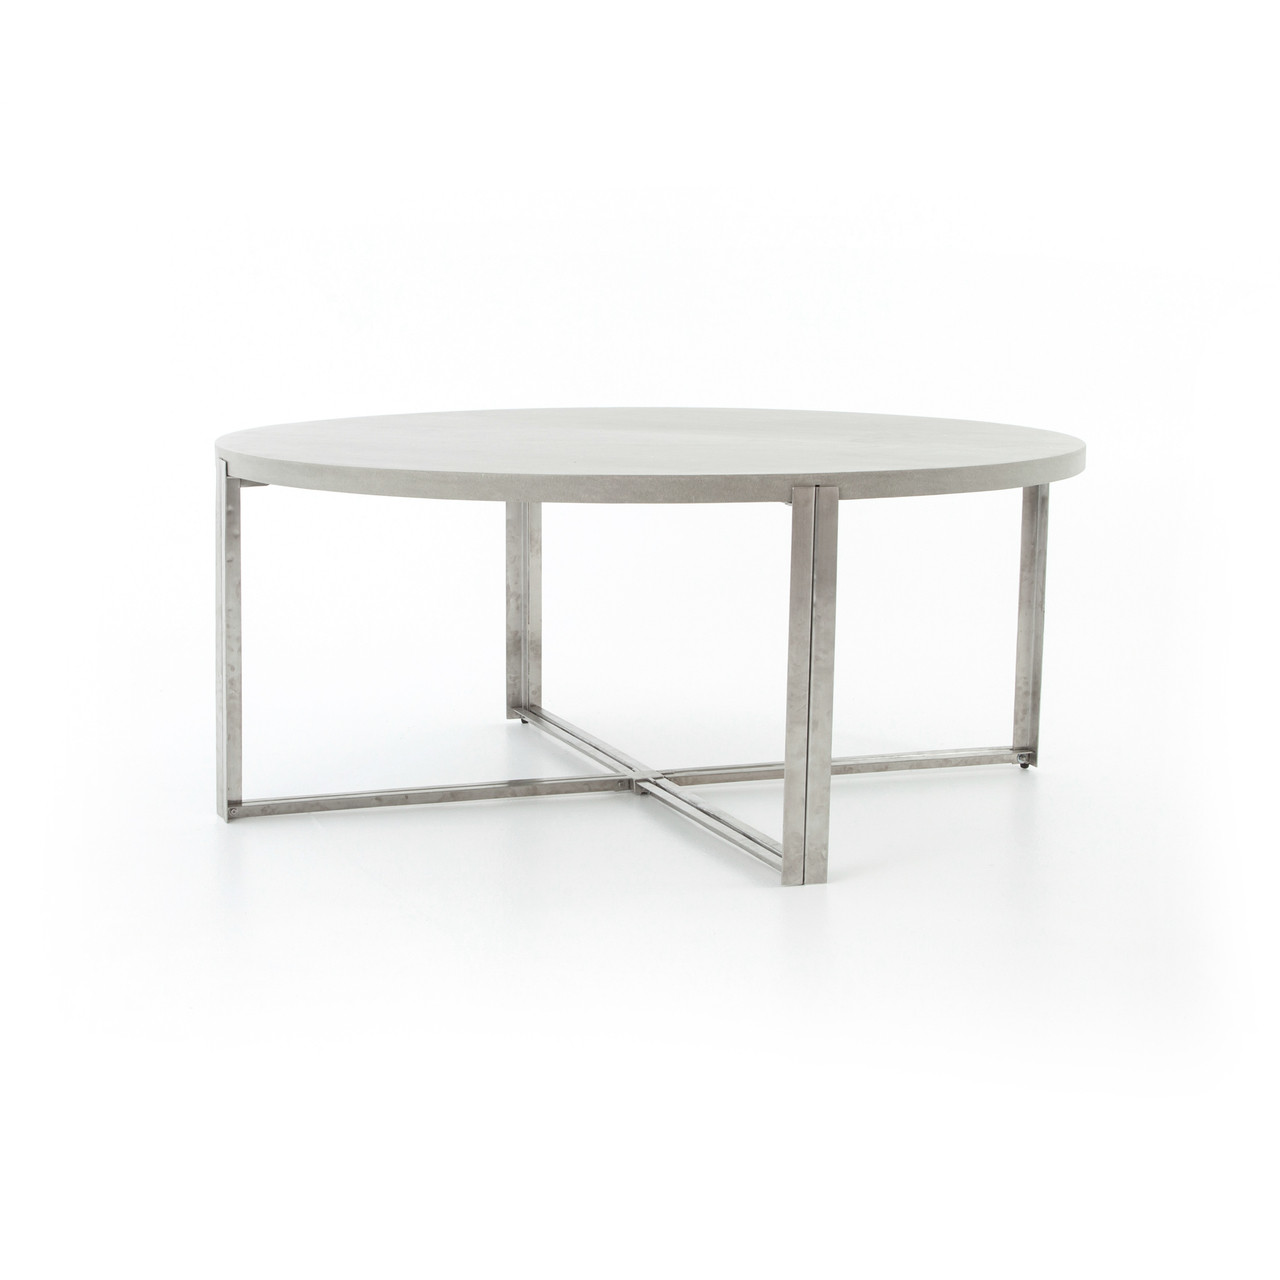 Outdoor round dining table - Colt Lavastone Outdoor 71 Round Dining Table